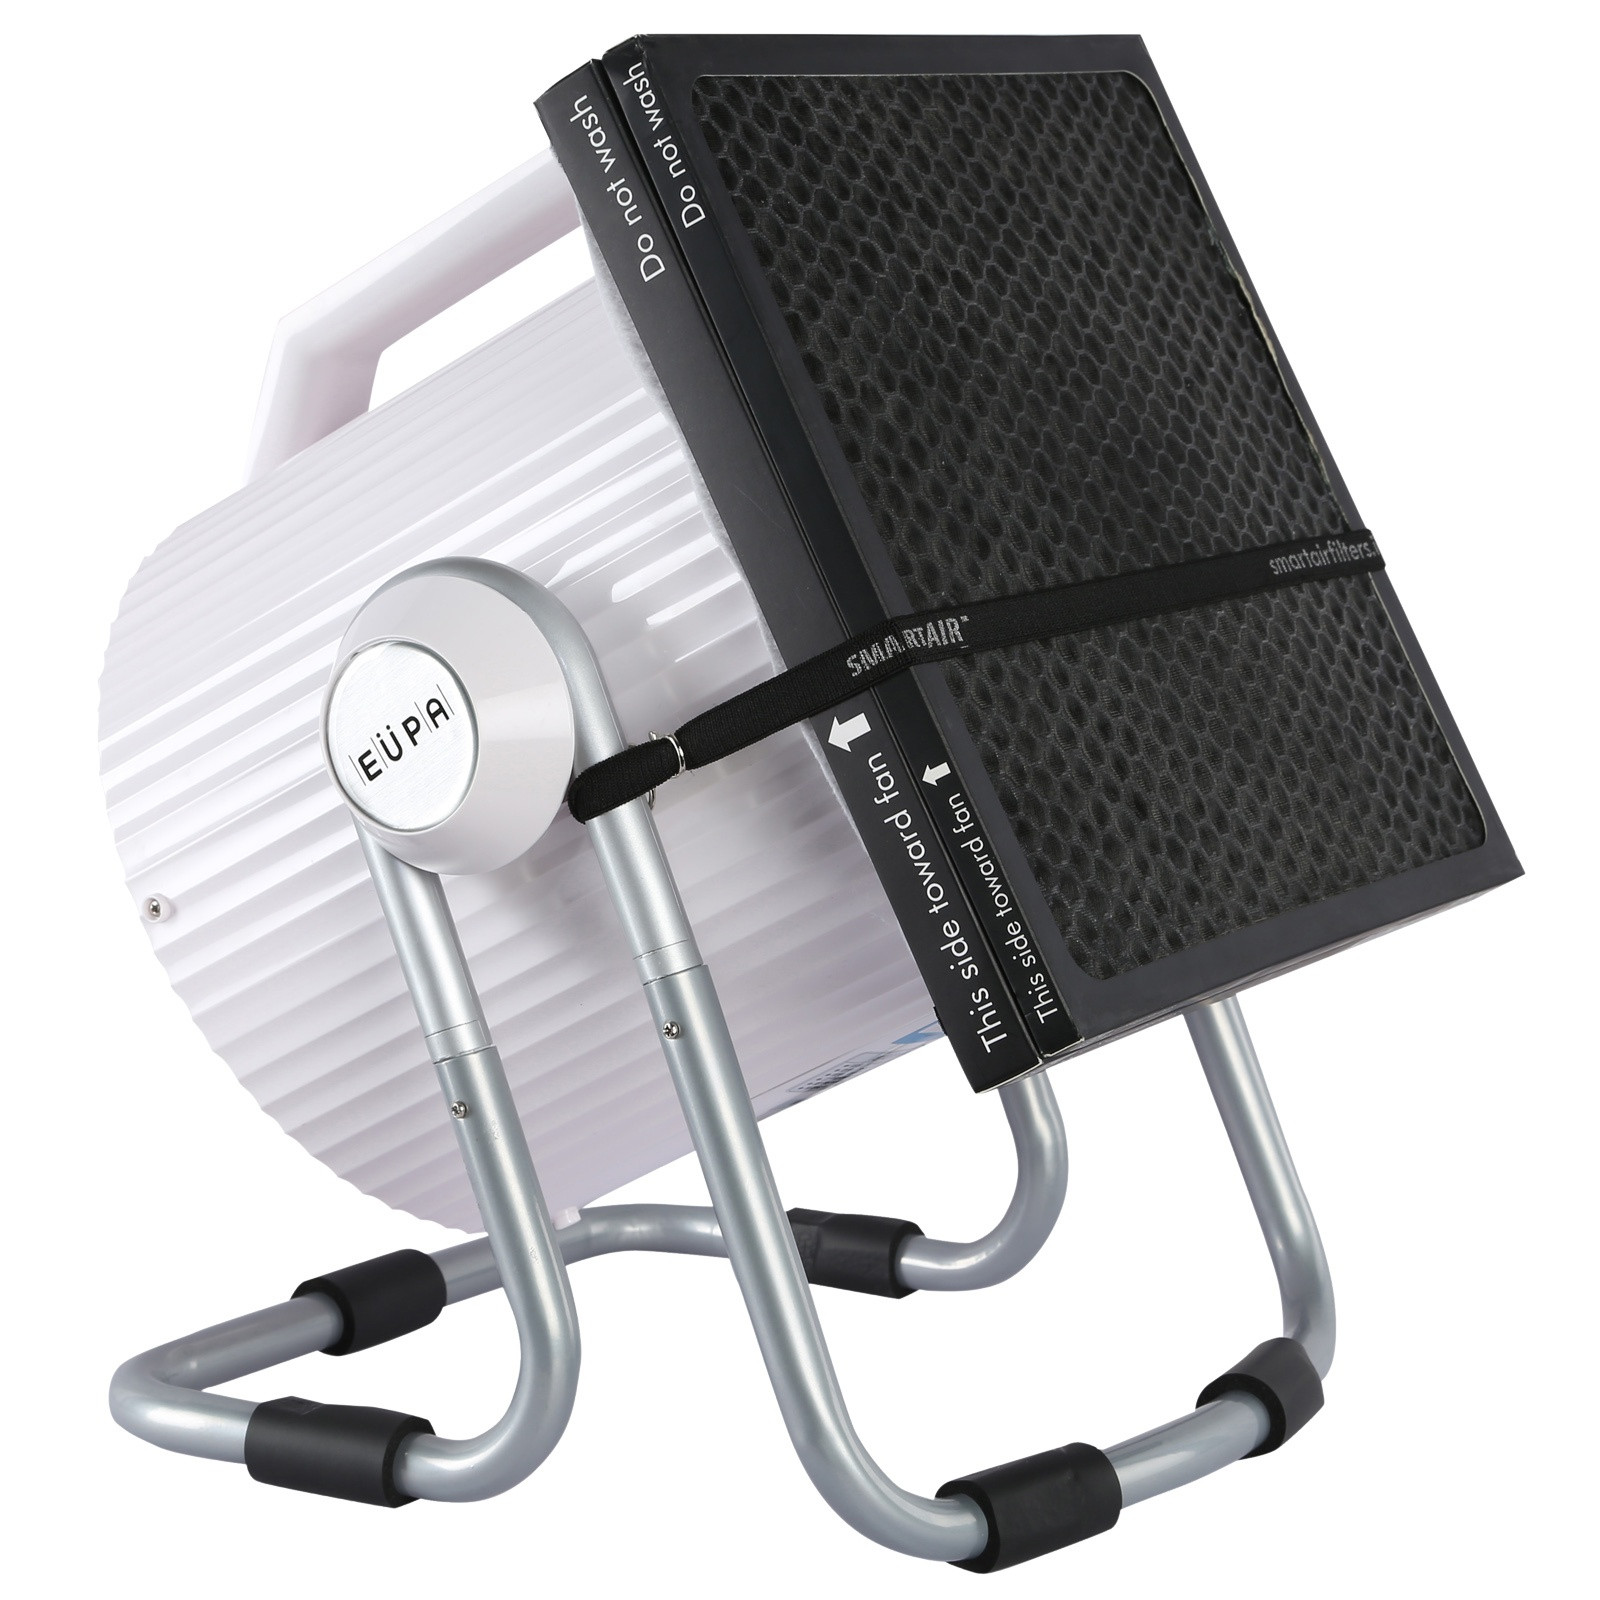 Best ideas about DIY Air Filter . Save or Pin Cannon DIY Air Purifier with Carbon Smart Air India Now.